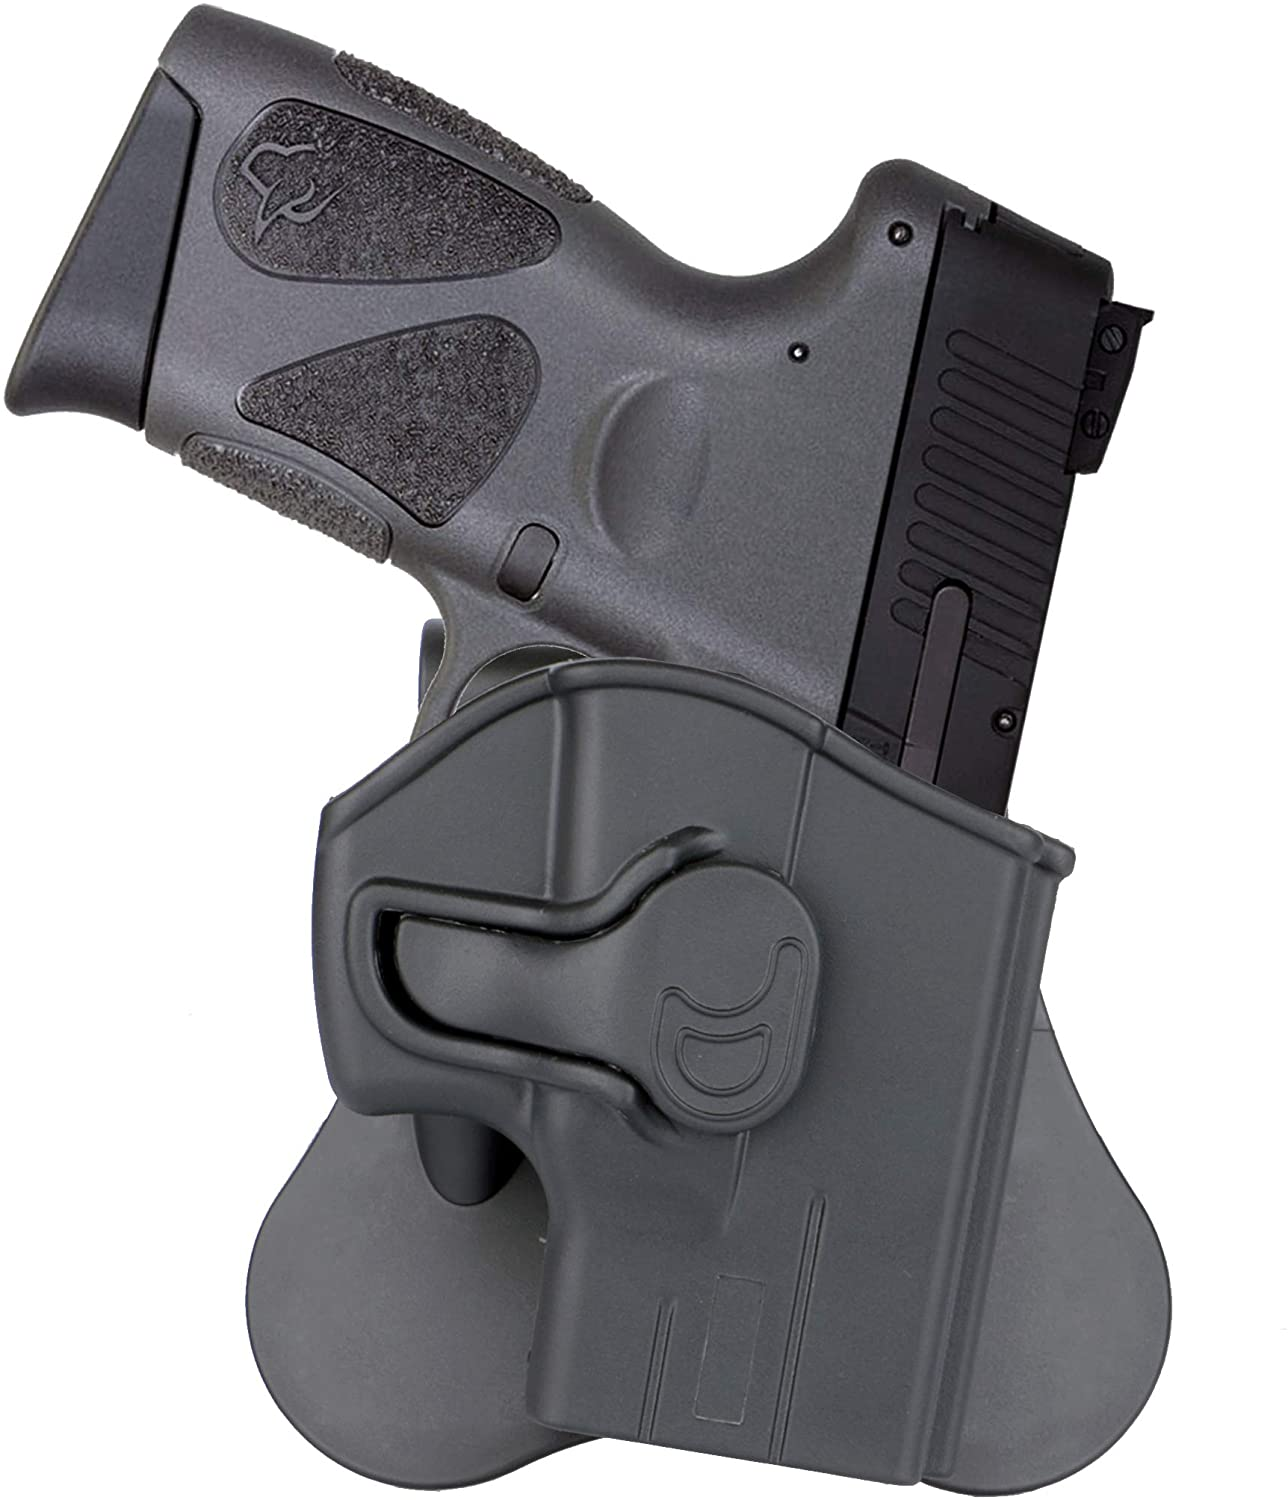 Taurus G3 G2c Holster, OWB Paddle Holsters Fits Taurus PT111 Millennium G2, G2C, G3, G3C, PT132, PT138, PT140, PT745, Polymer Open Carry Gun Holster, Tactical Holster, 360° Adjustable - Right Handed